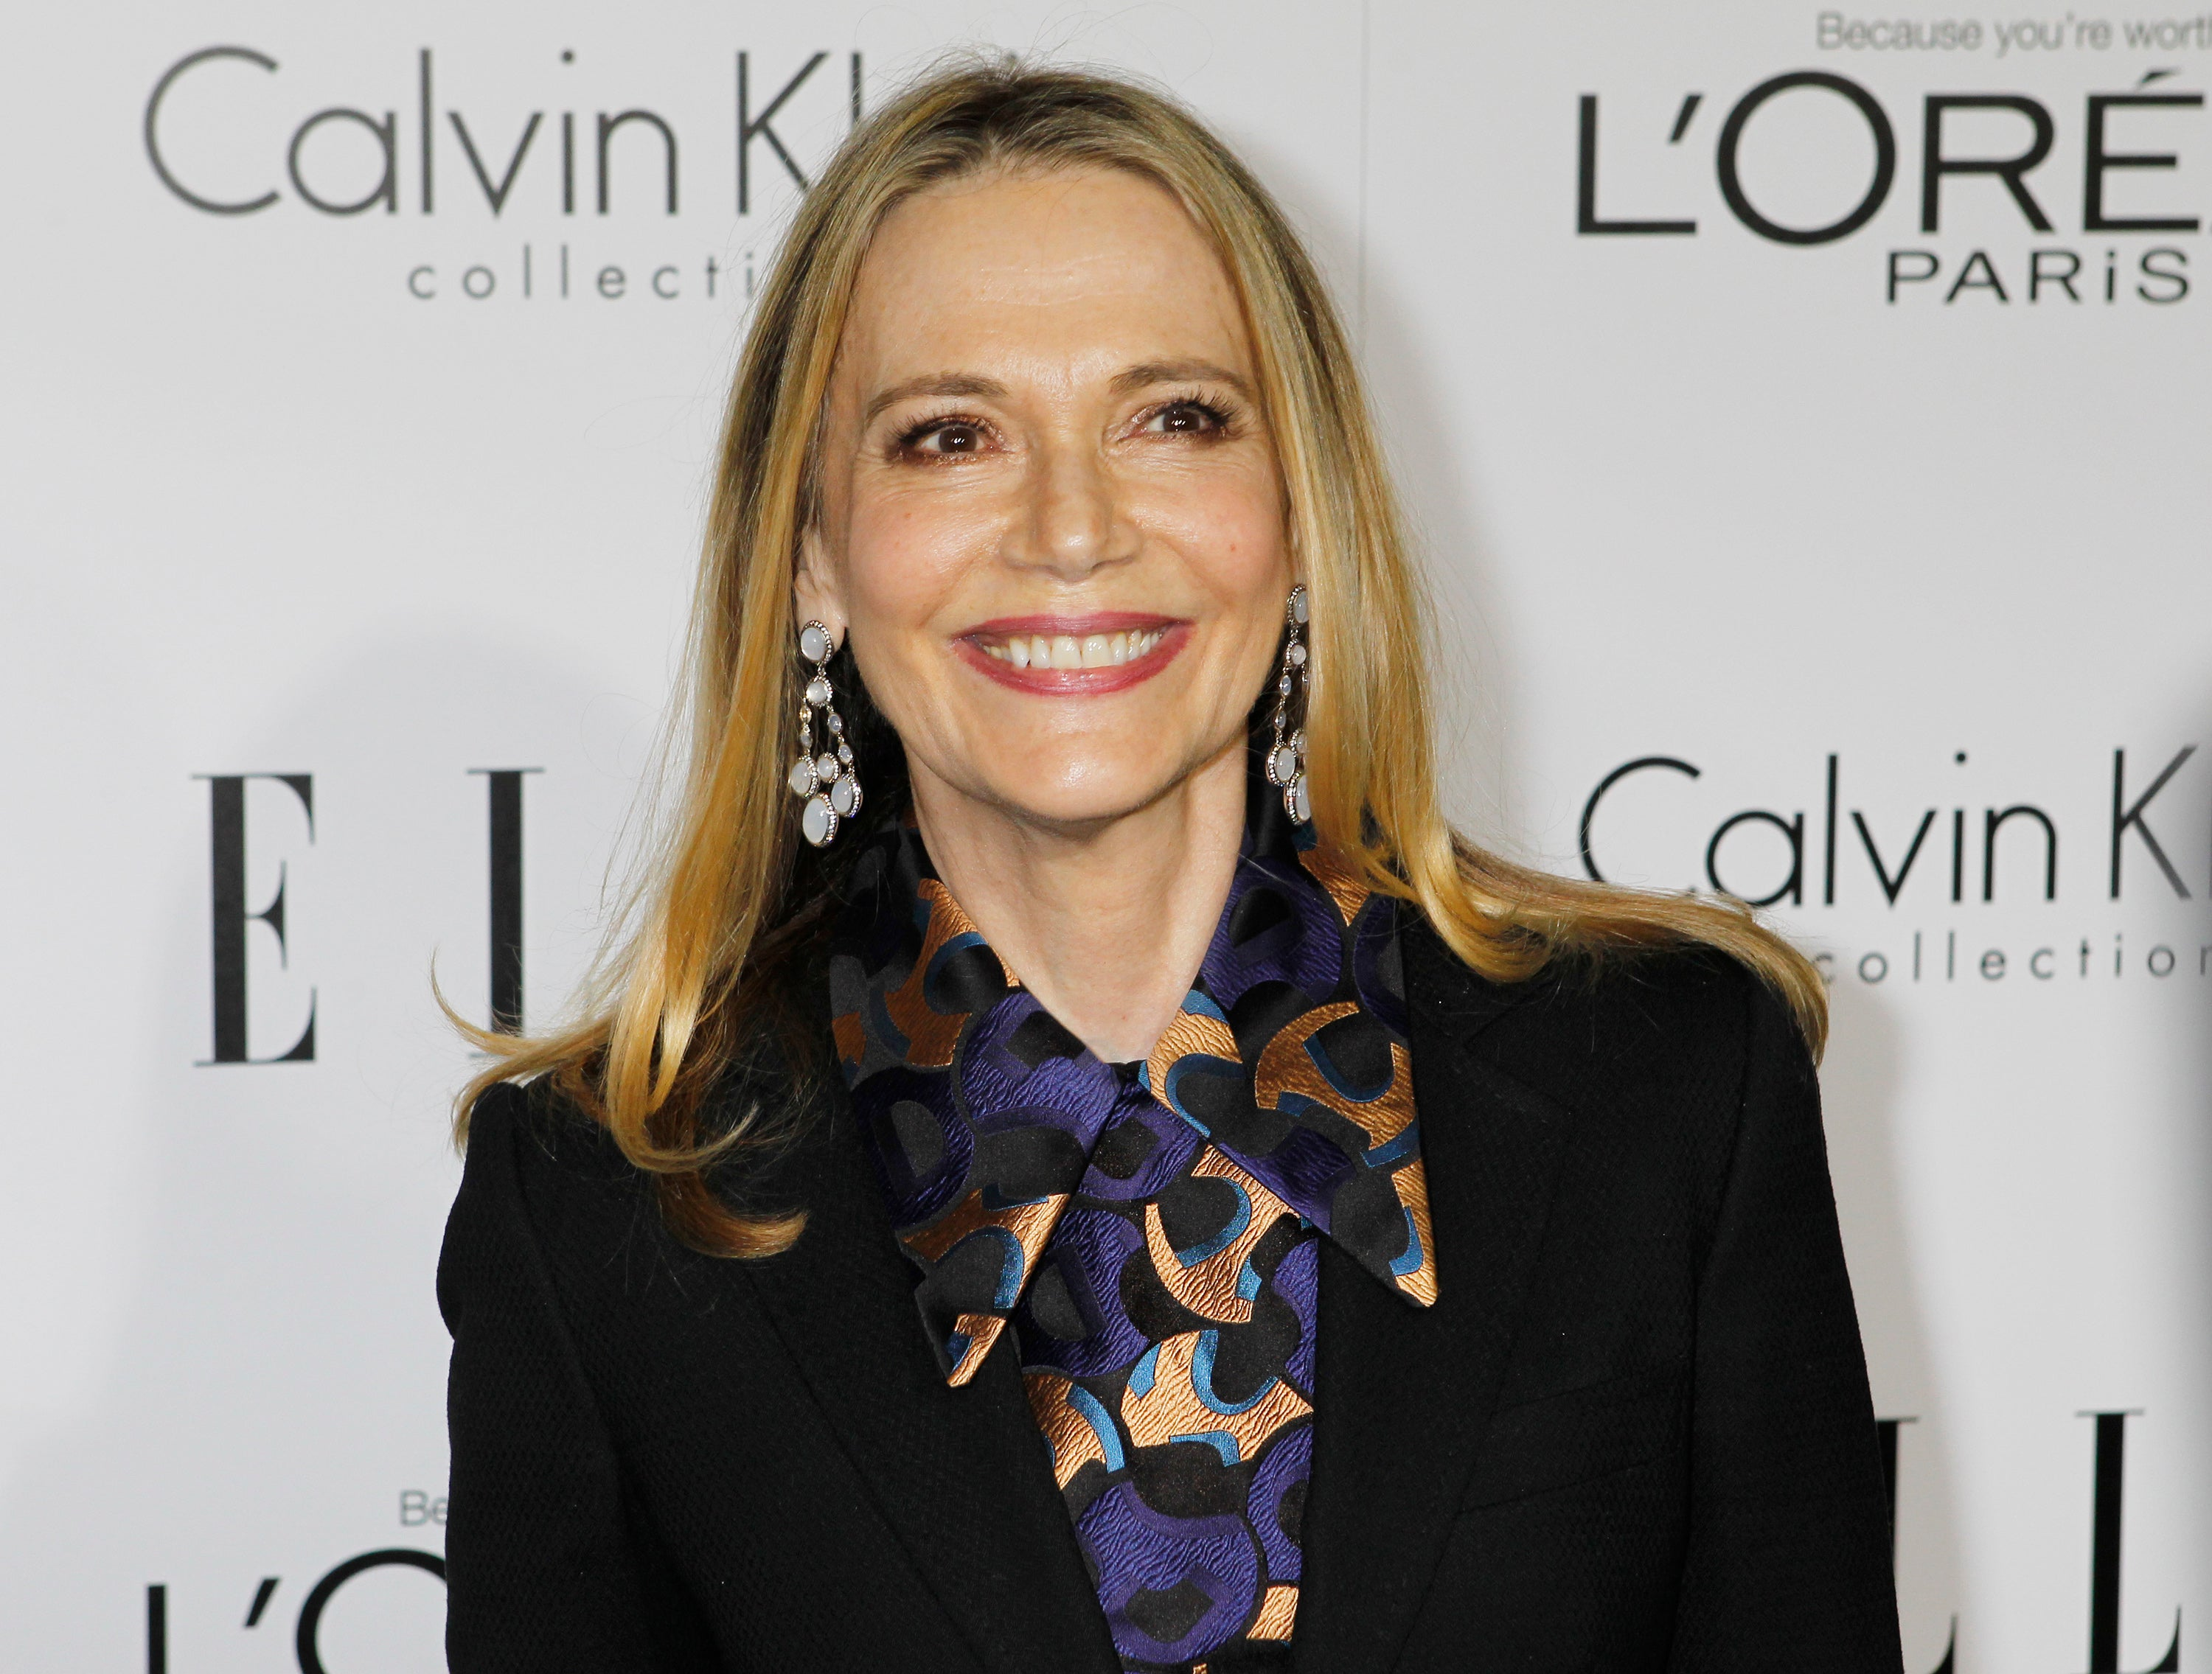 Peggy Lipton smiling on a red carpet.